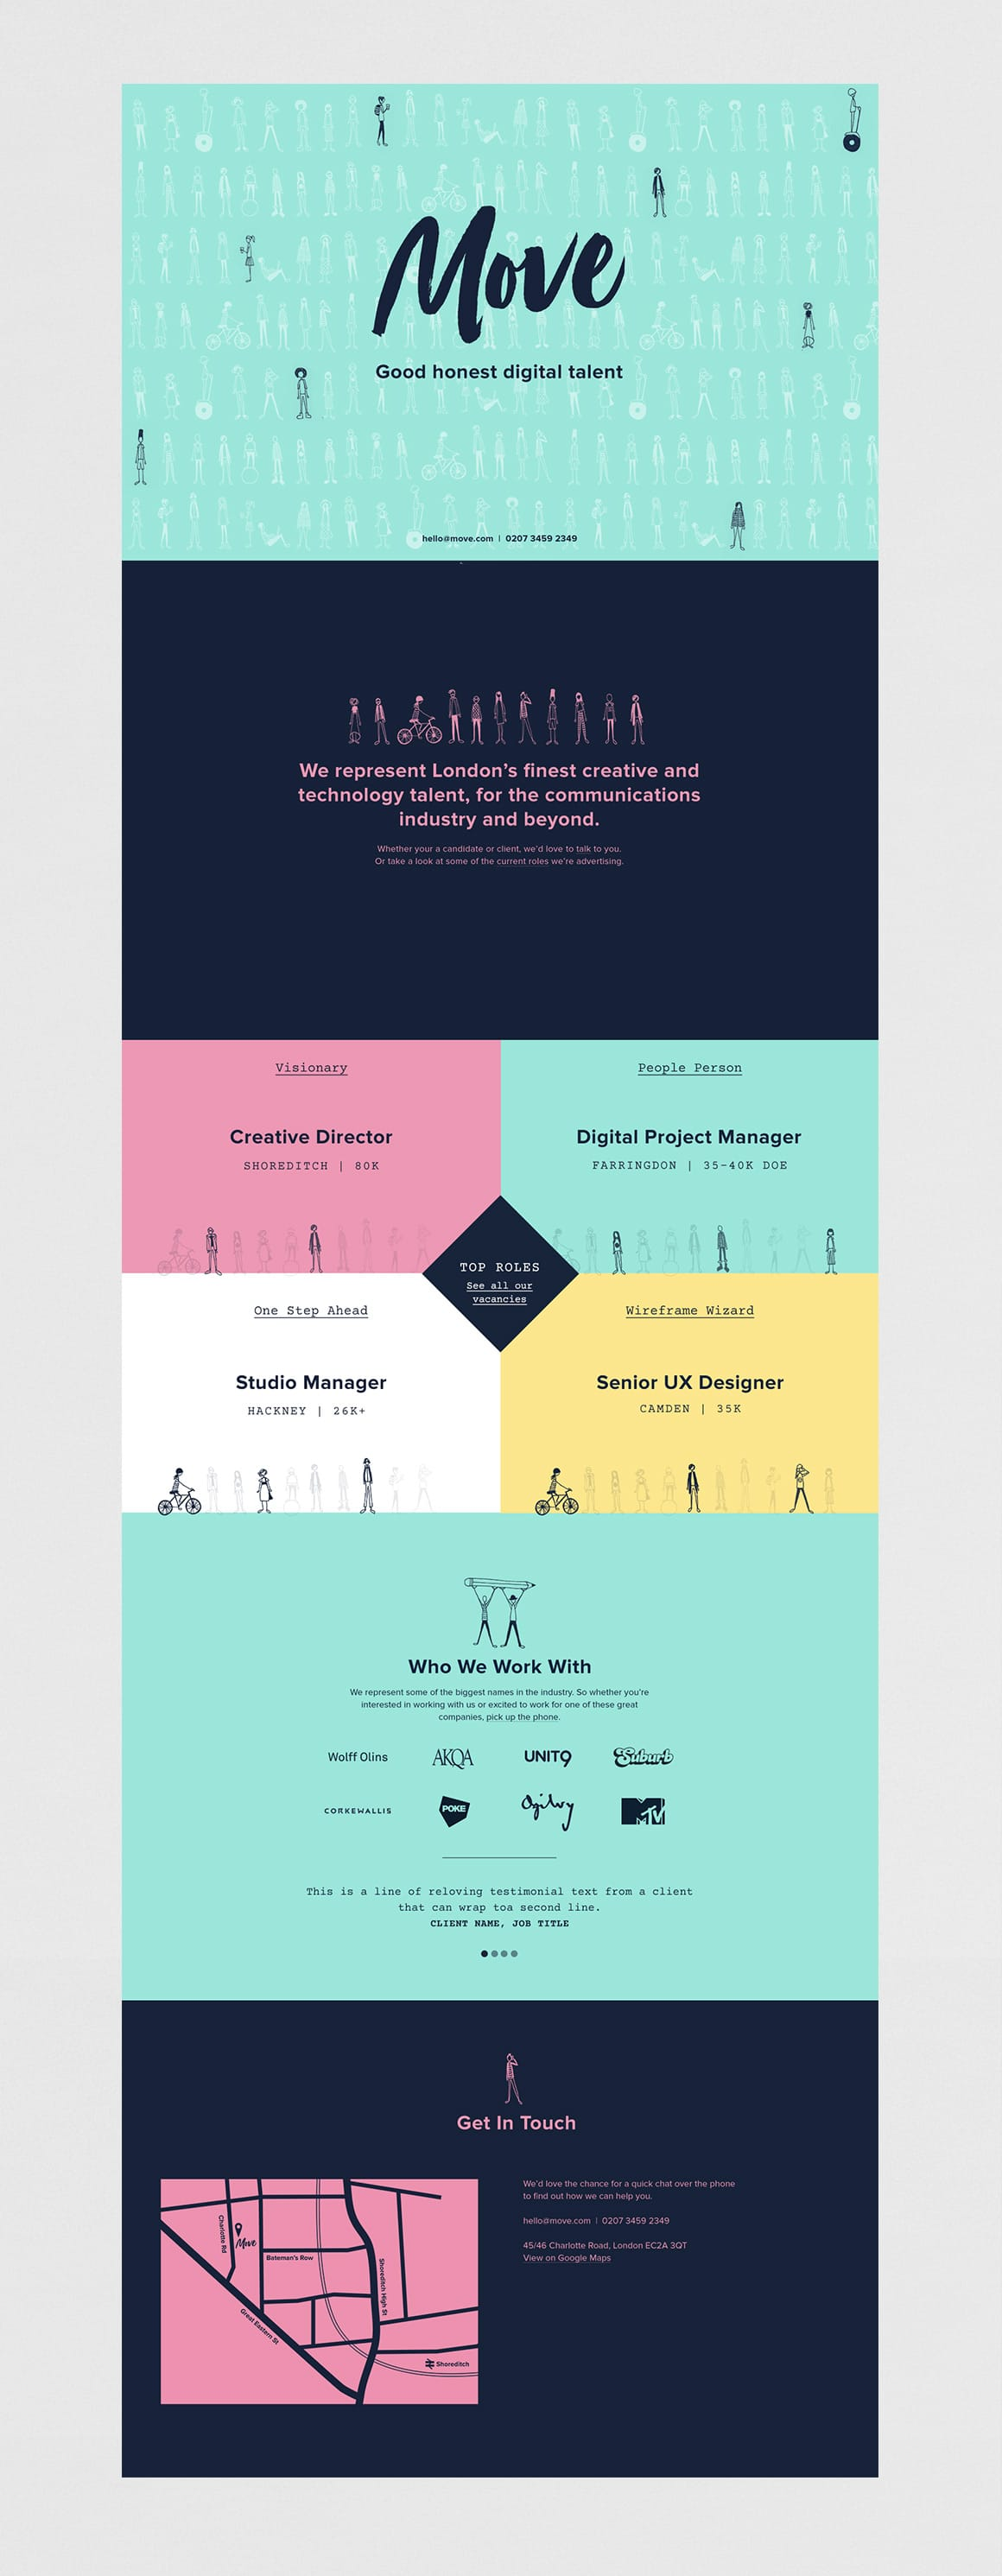 Move_01_brandidentity_sitedesign_studioLovelock_03